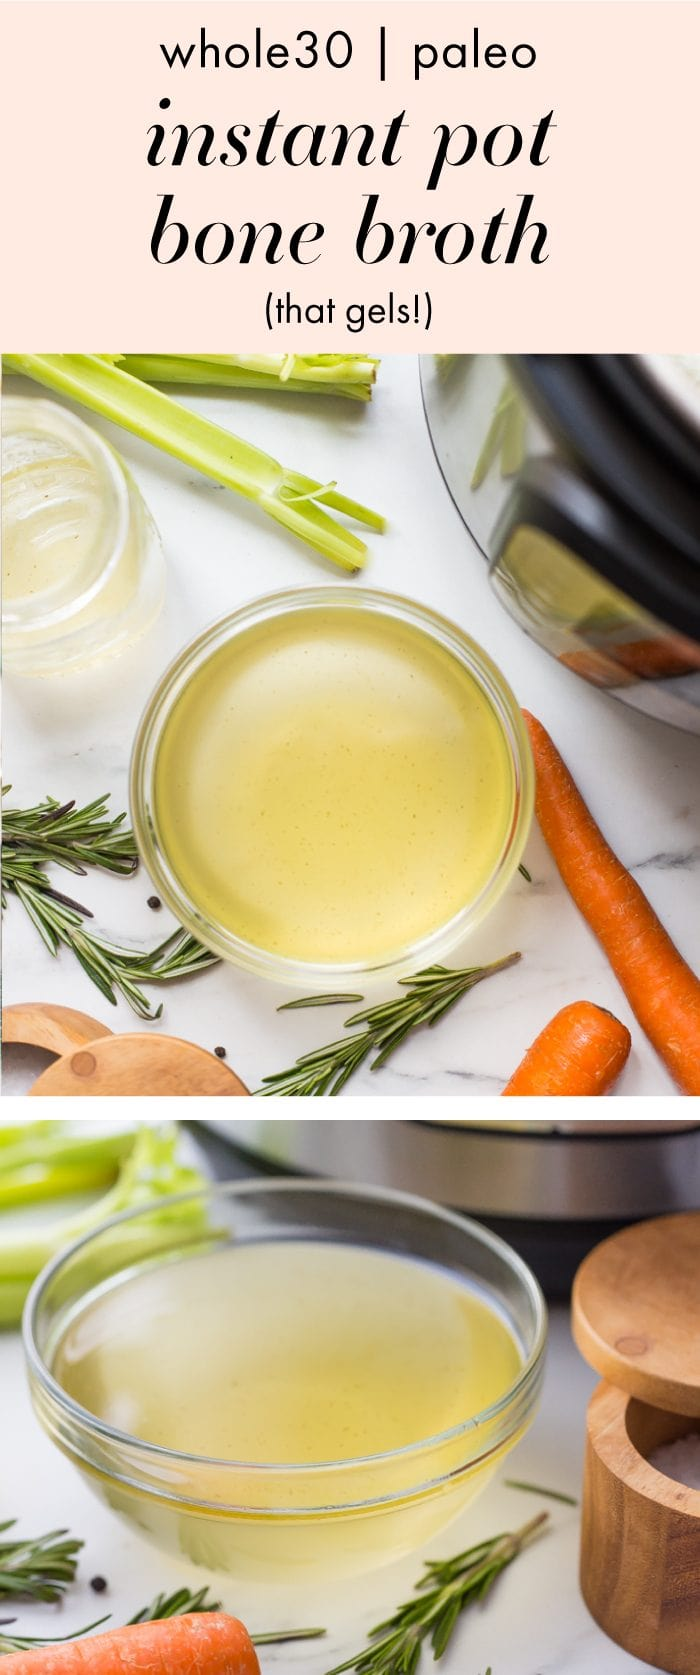 This Instant Pot bone broth is the best Whole30 bone broth. It's so easy to make and turns out deliciously rich and nourishing, plus it gels like a straight up Jell-O jiggler! Once you've tried this Instant Pot bone broth, you'll have a batch of this Whole30 bone broth in the fridge at all times. We certainly do!